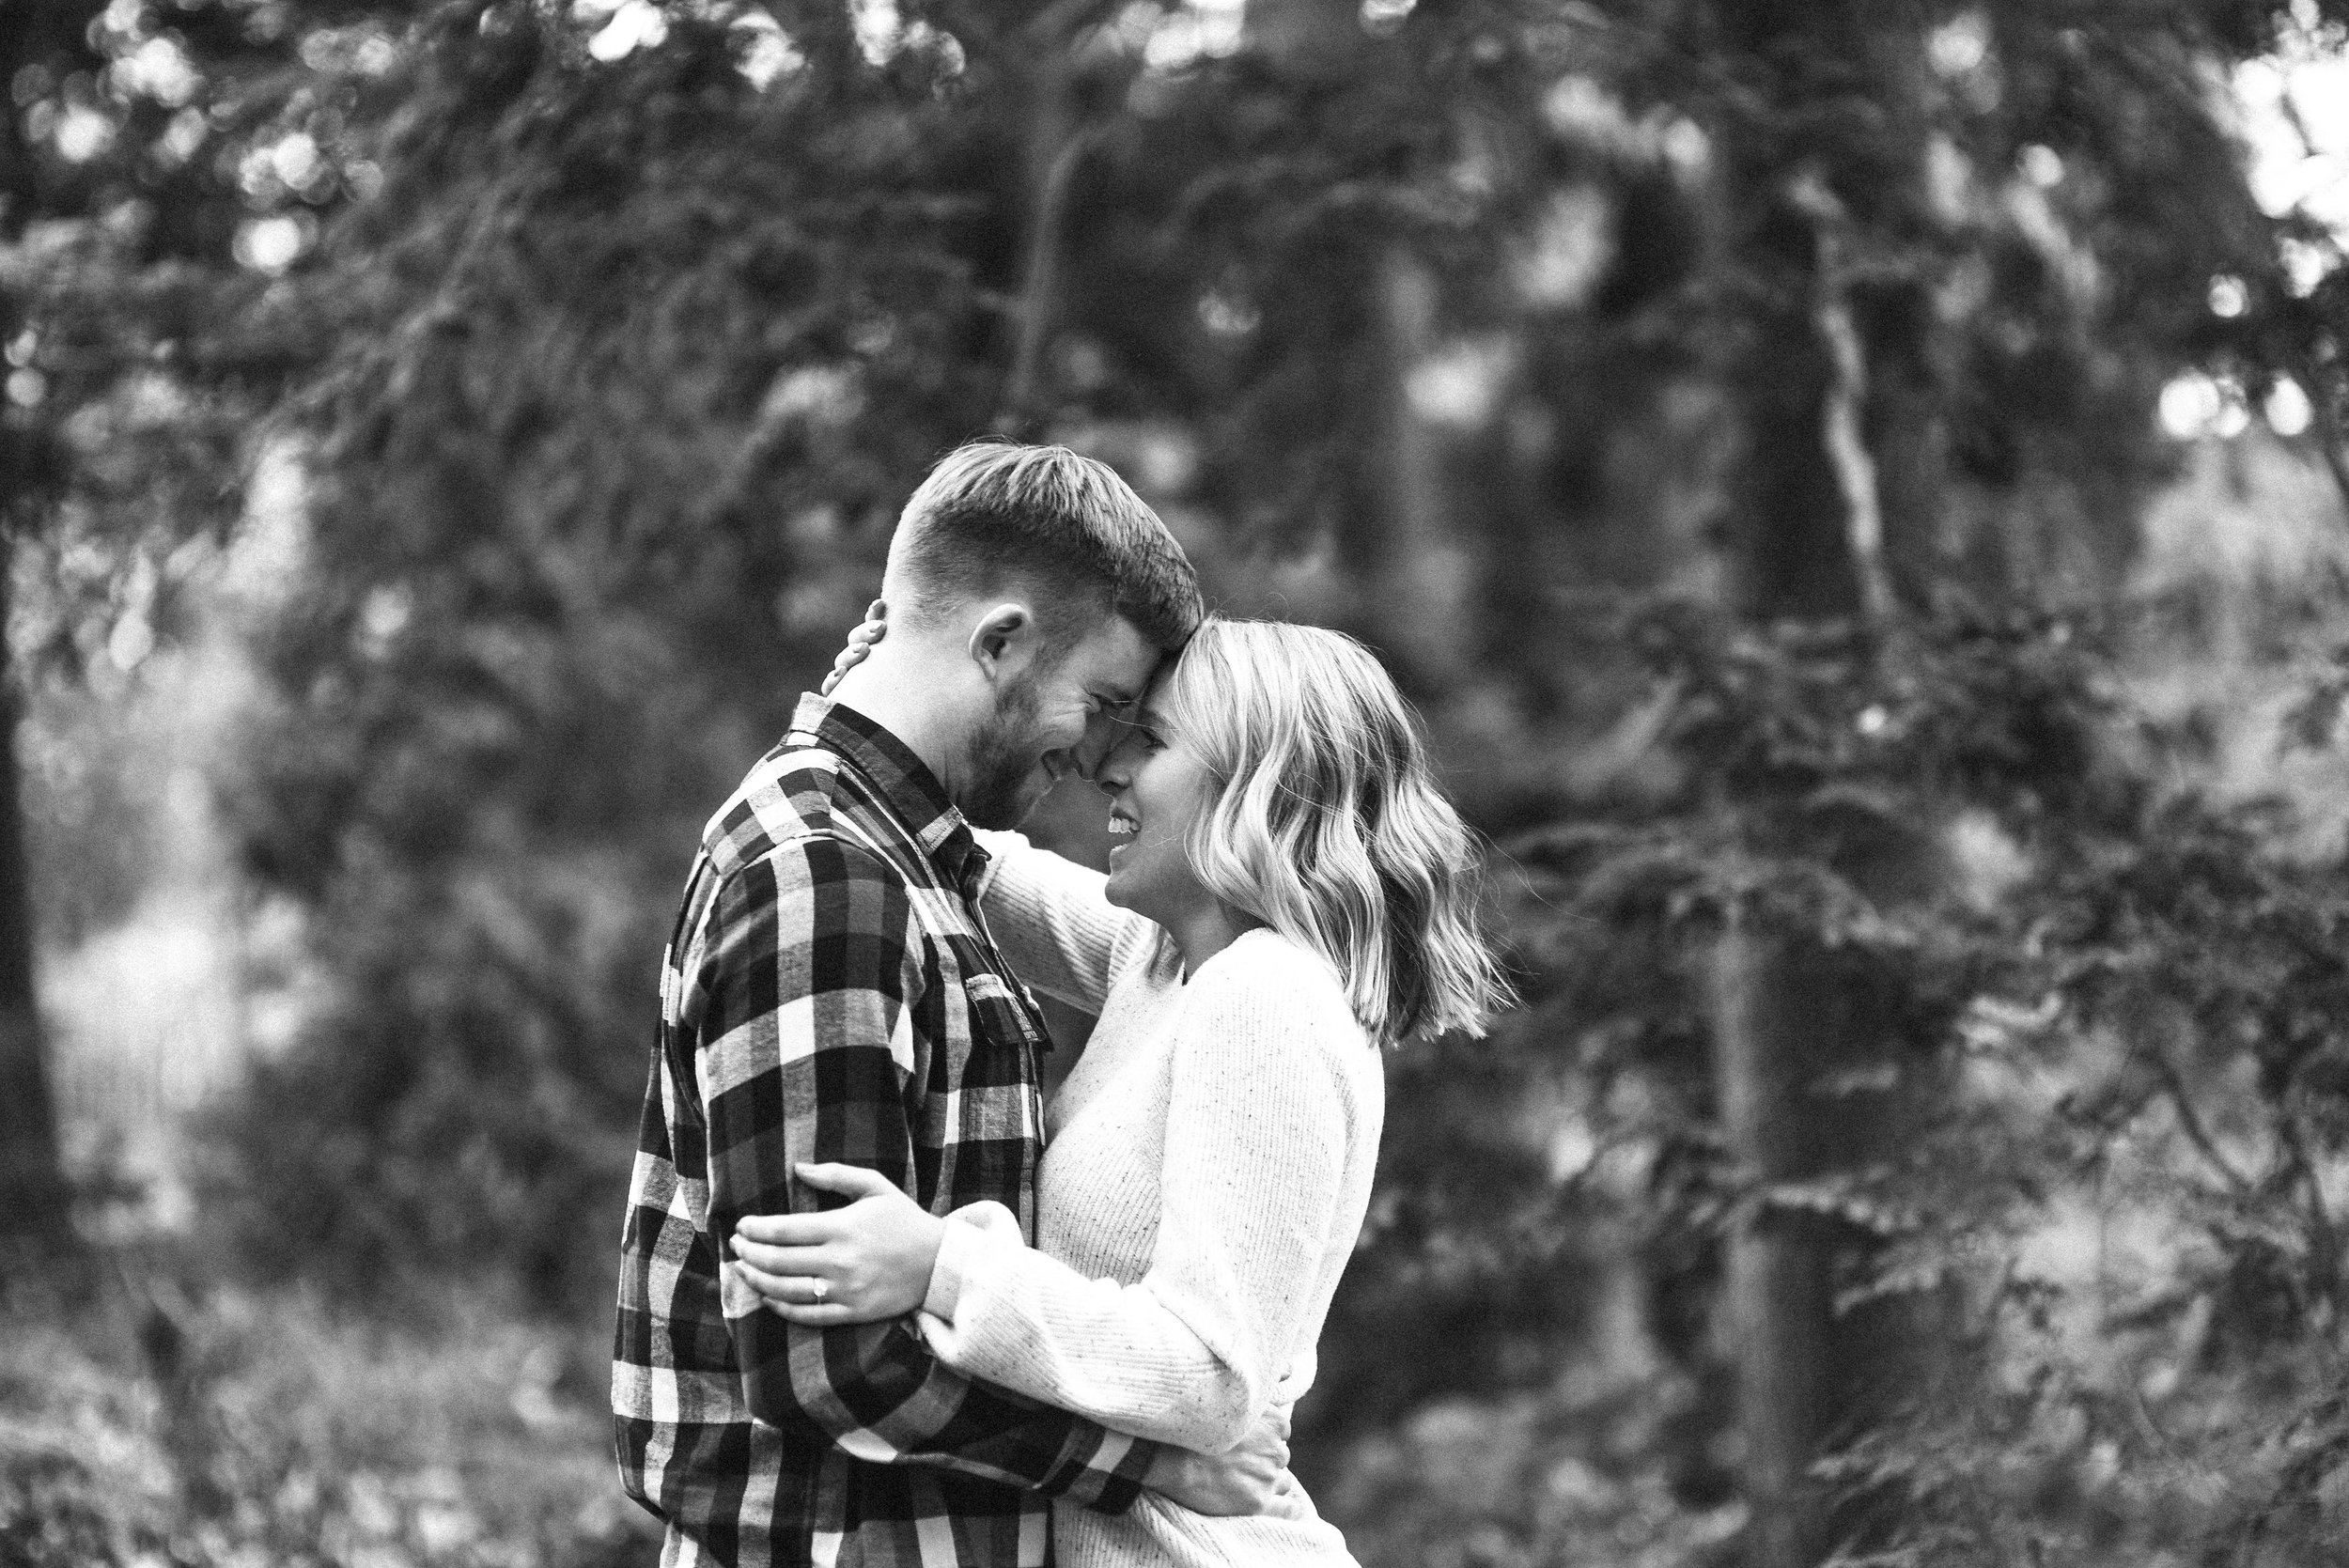 East_Lansing_Engagement_Photos-22.jpg